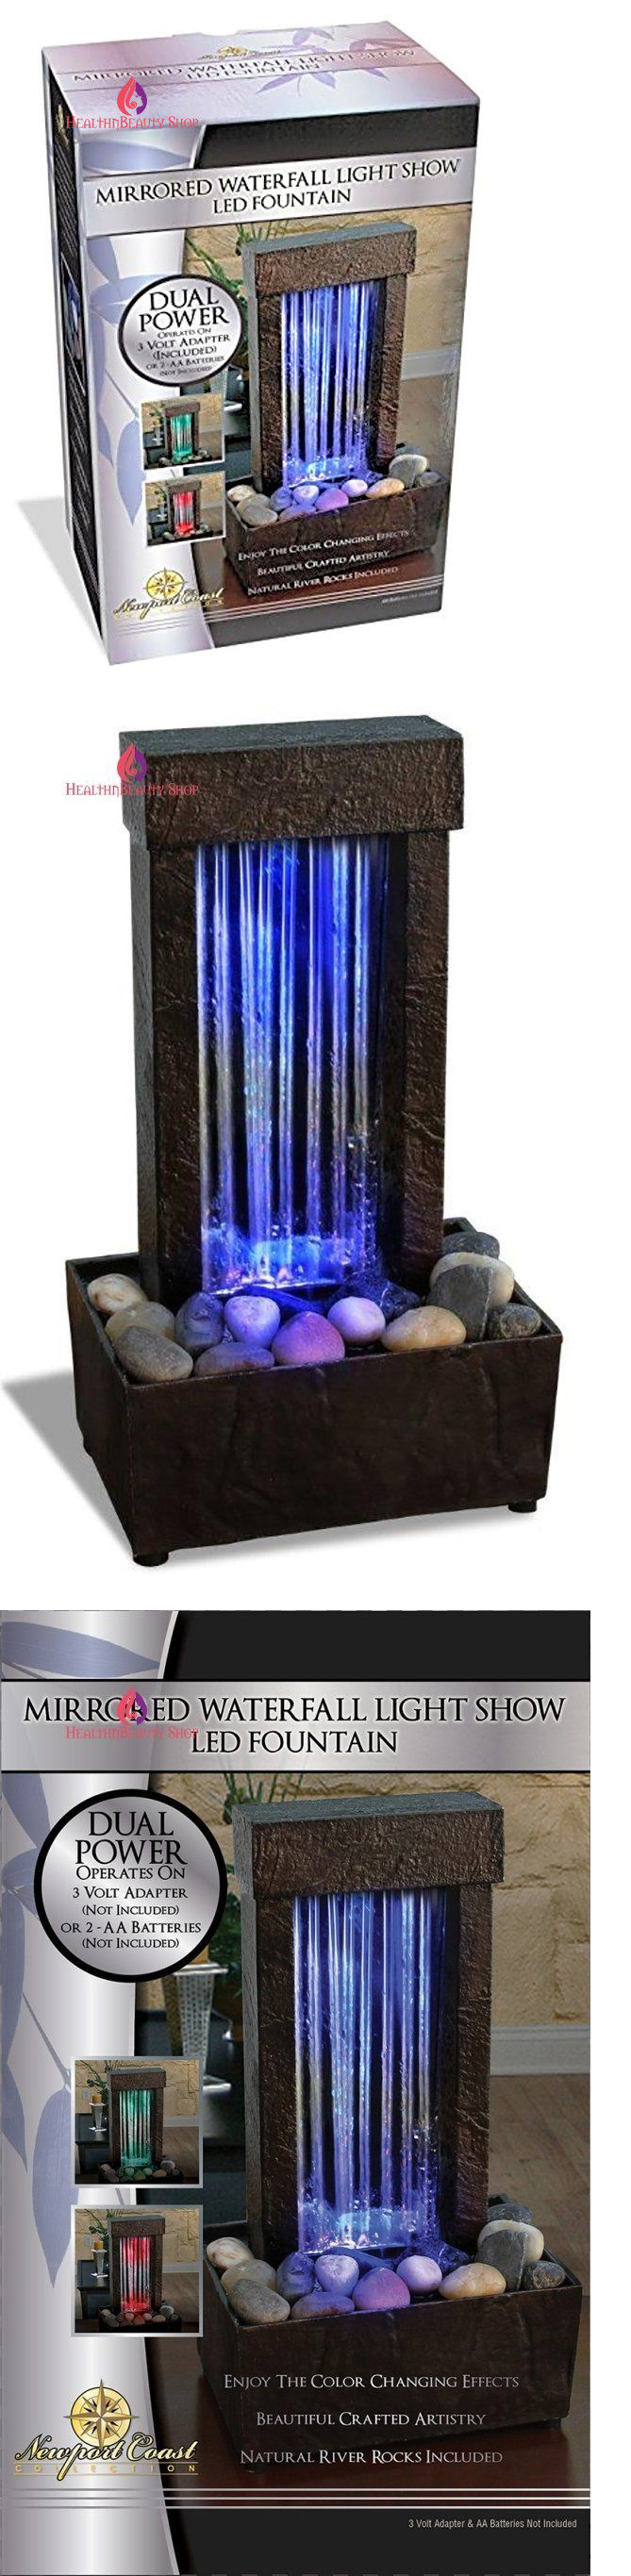 Indoor fountains 20569 mirrored waterfall light show led fountain indoor fountains 20569 mirrored waterfall light show led fountain buy it now only workwithnaturefo